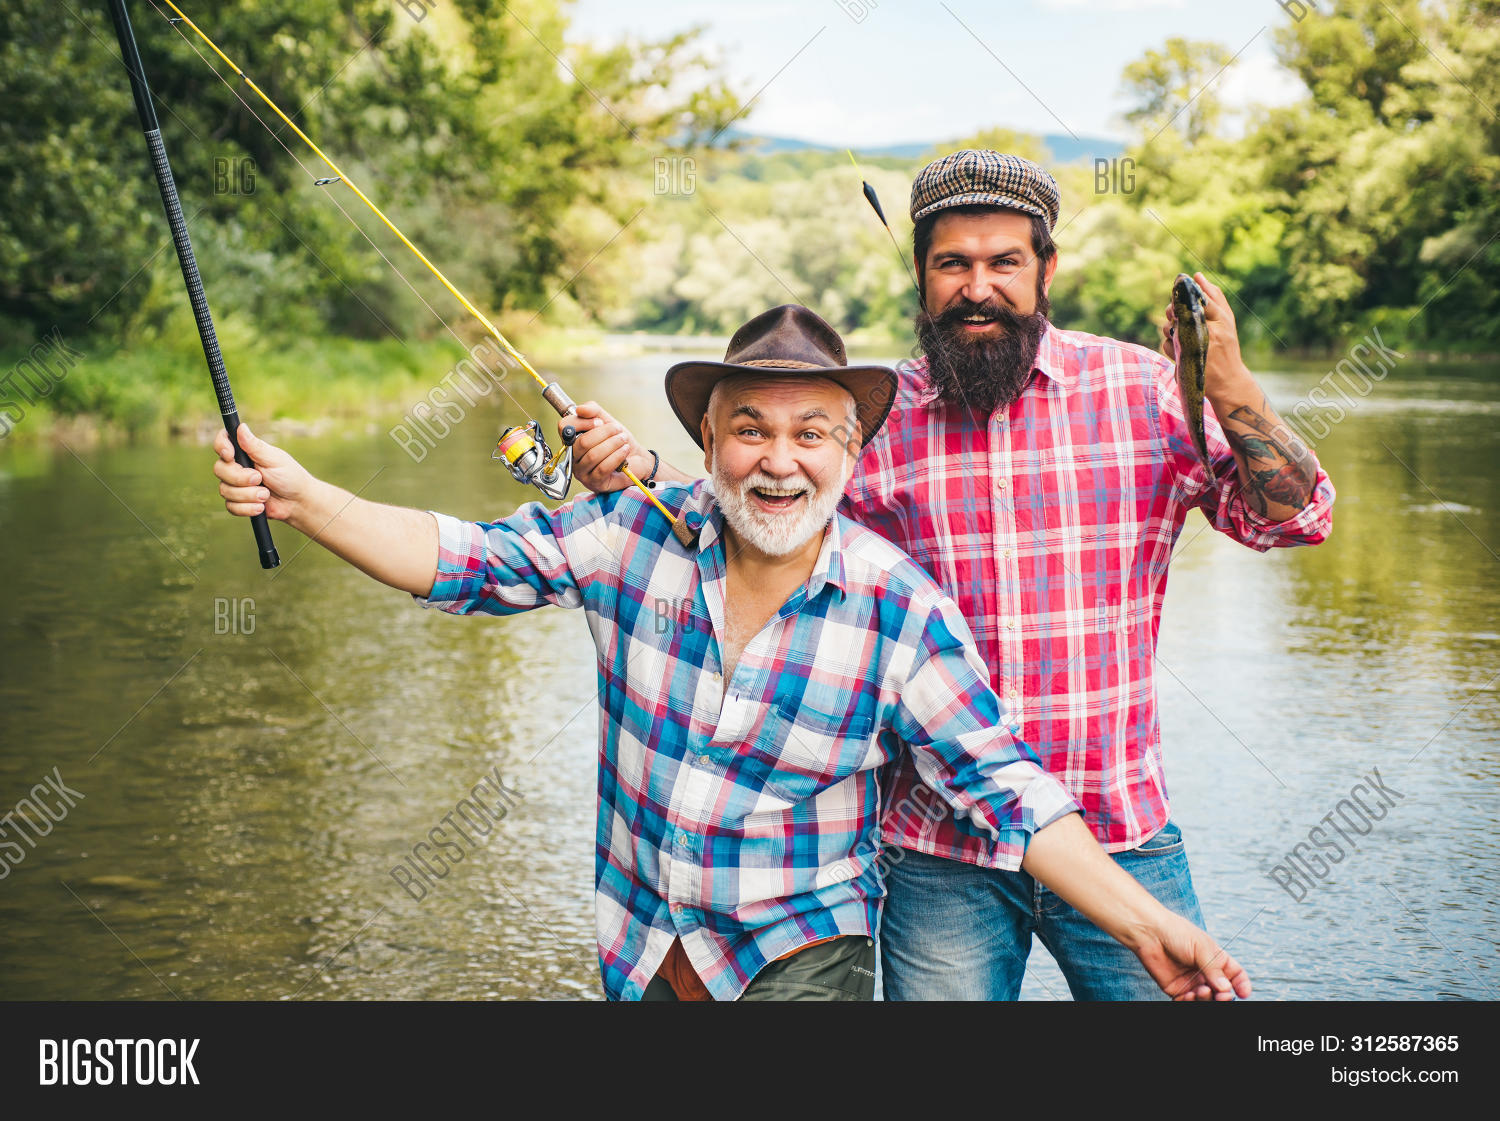 35s,60s,America,American,activity,aged,angler,bait,carefree,catch,catching,countryside,dad,day,elderly,family,father,fish,fishing,fly,fly-fishing,flyfishing,fun,grandfather,grandpa,grandson,growing,growth,happiness,hat,hoary,hobby,lure,male,man,net,old,pensioner,person,retirement,rod,senior,smile,son,stream,trip,trout,wild